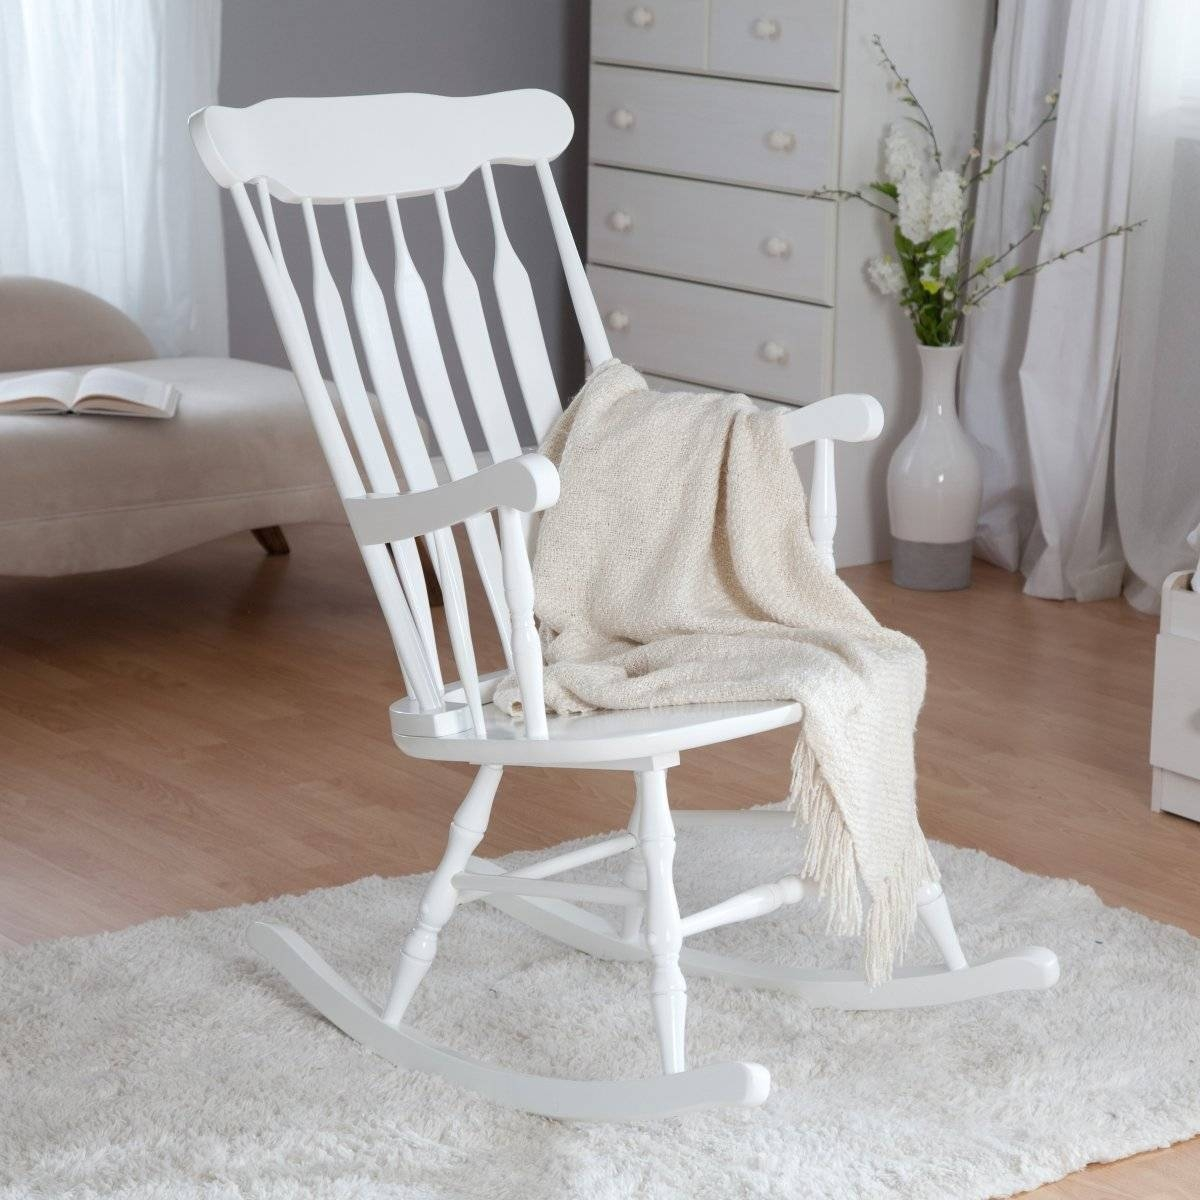 Elegant Wooden Rocking Chair For Nursery Chair Sofa | Tamingthesat inside Sofa Rocking Chairs (Image 3 of 30)